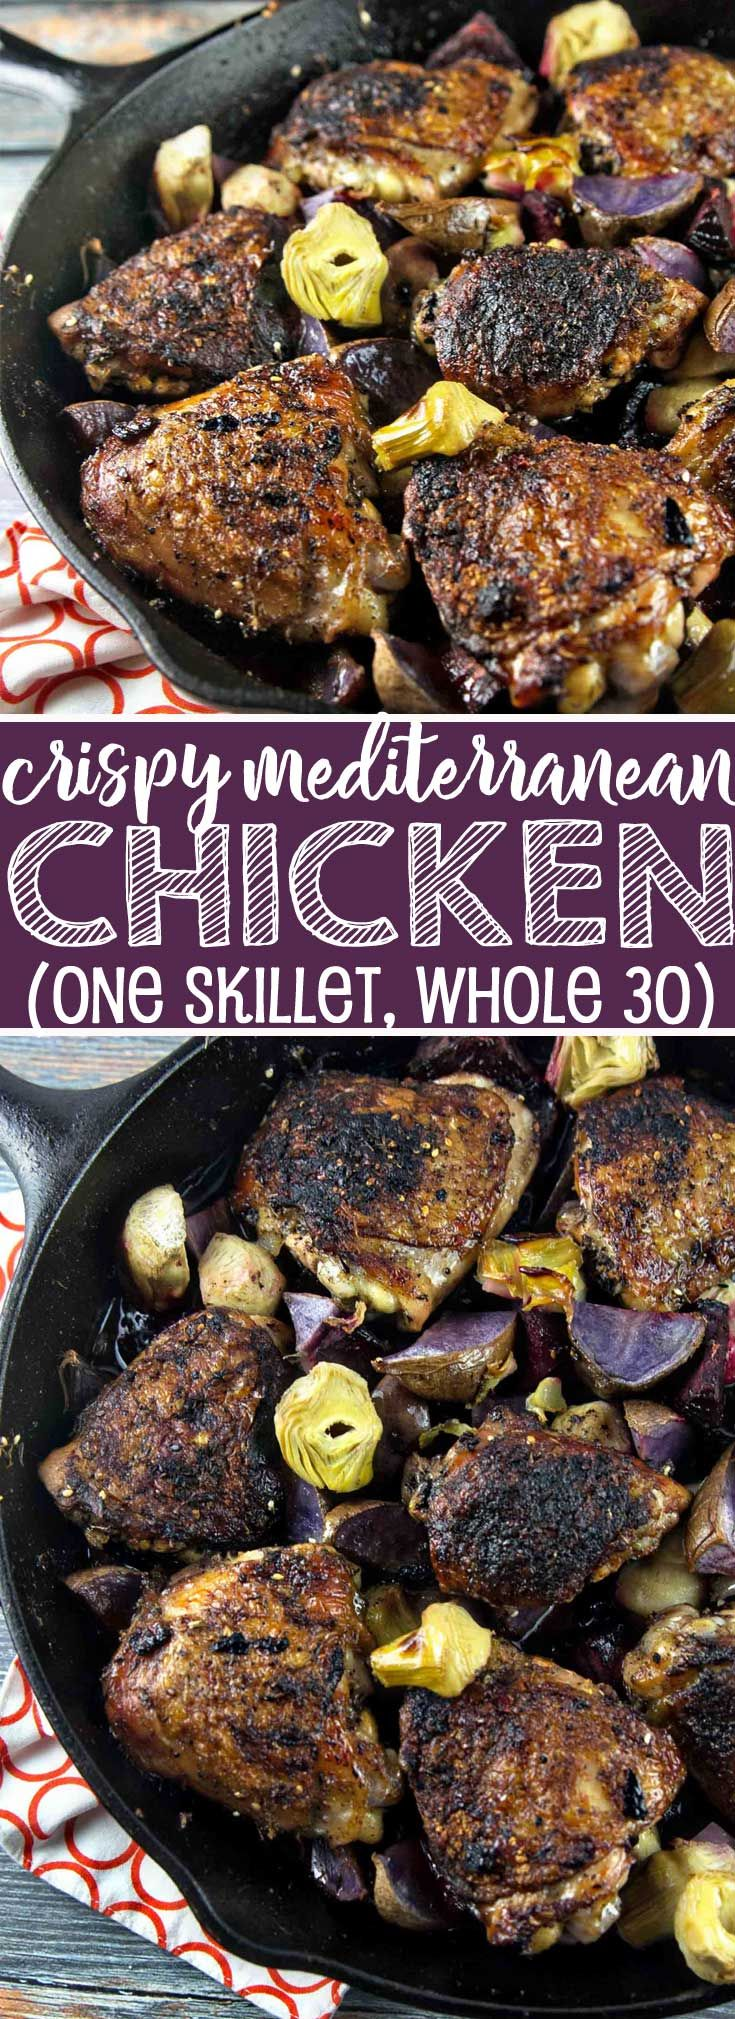 One Skillet Crispy Mediterranean Chicken roasted with beets and artichokes. Gluten free, paleo, and Whole 30 compliant. {Bunsen Burner Bakery} #dinner #chicken #glutenfree #paleo #whole30 via @bnsnbrnrbakery